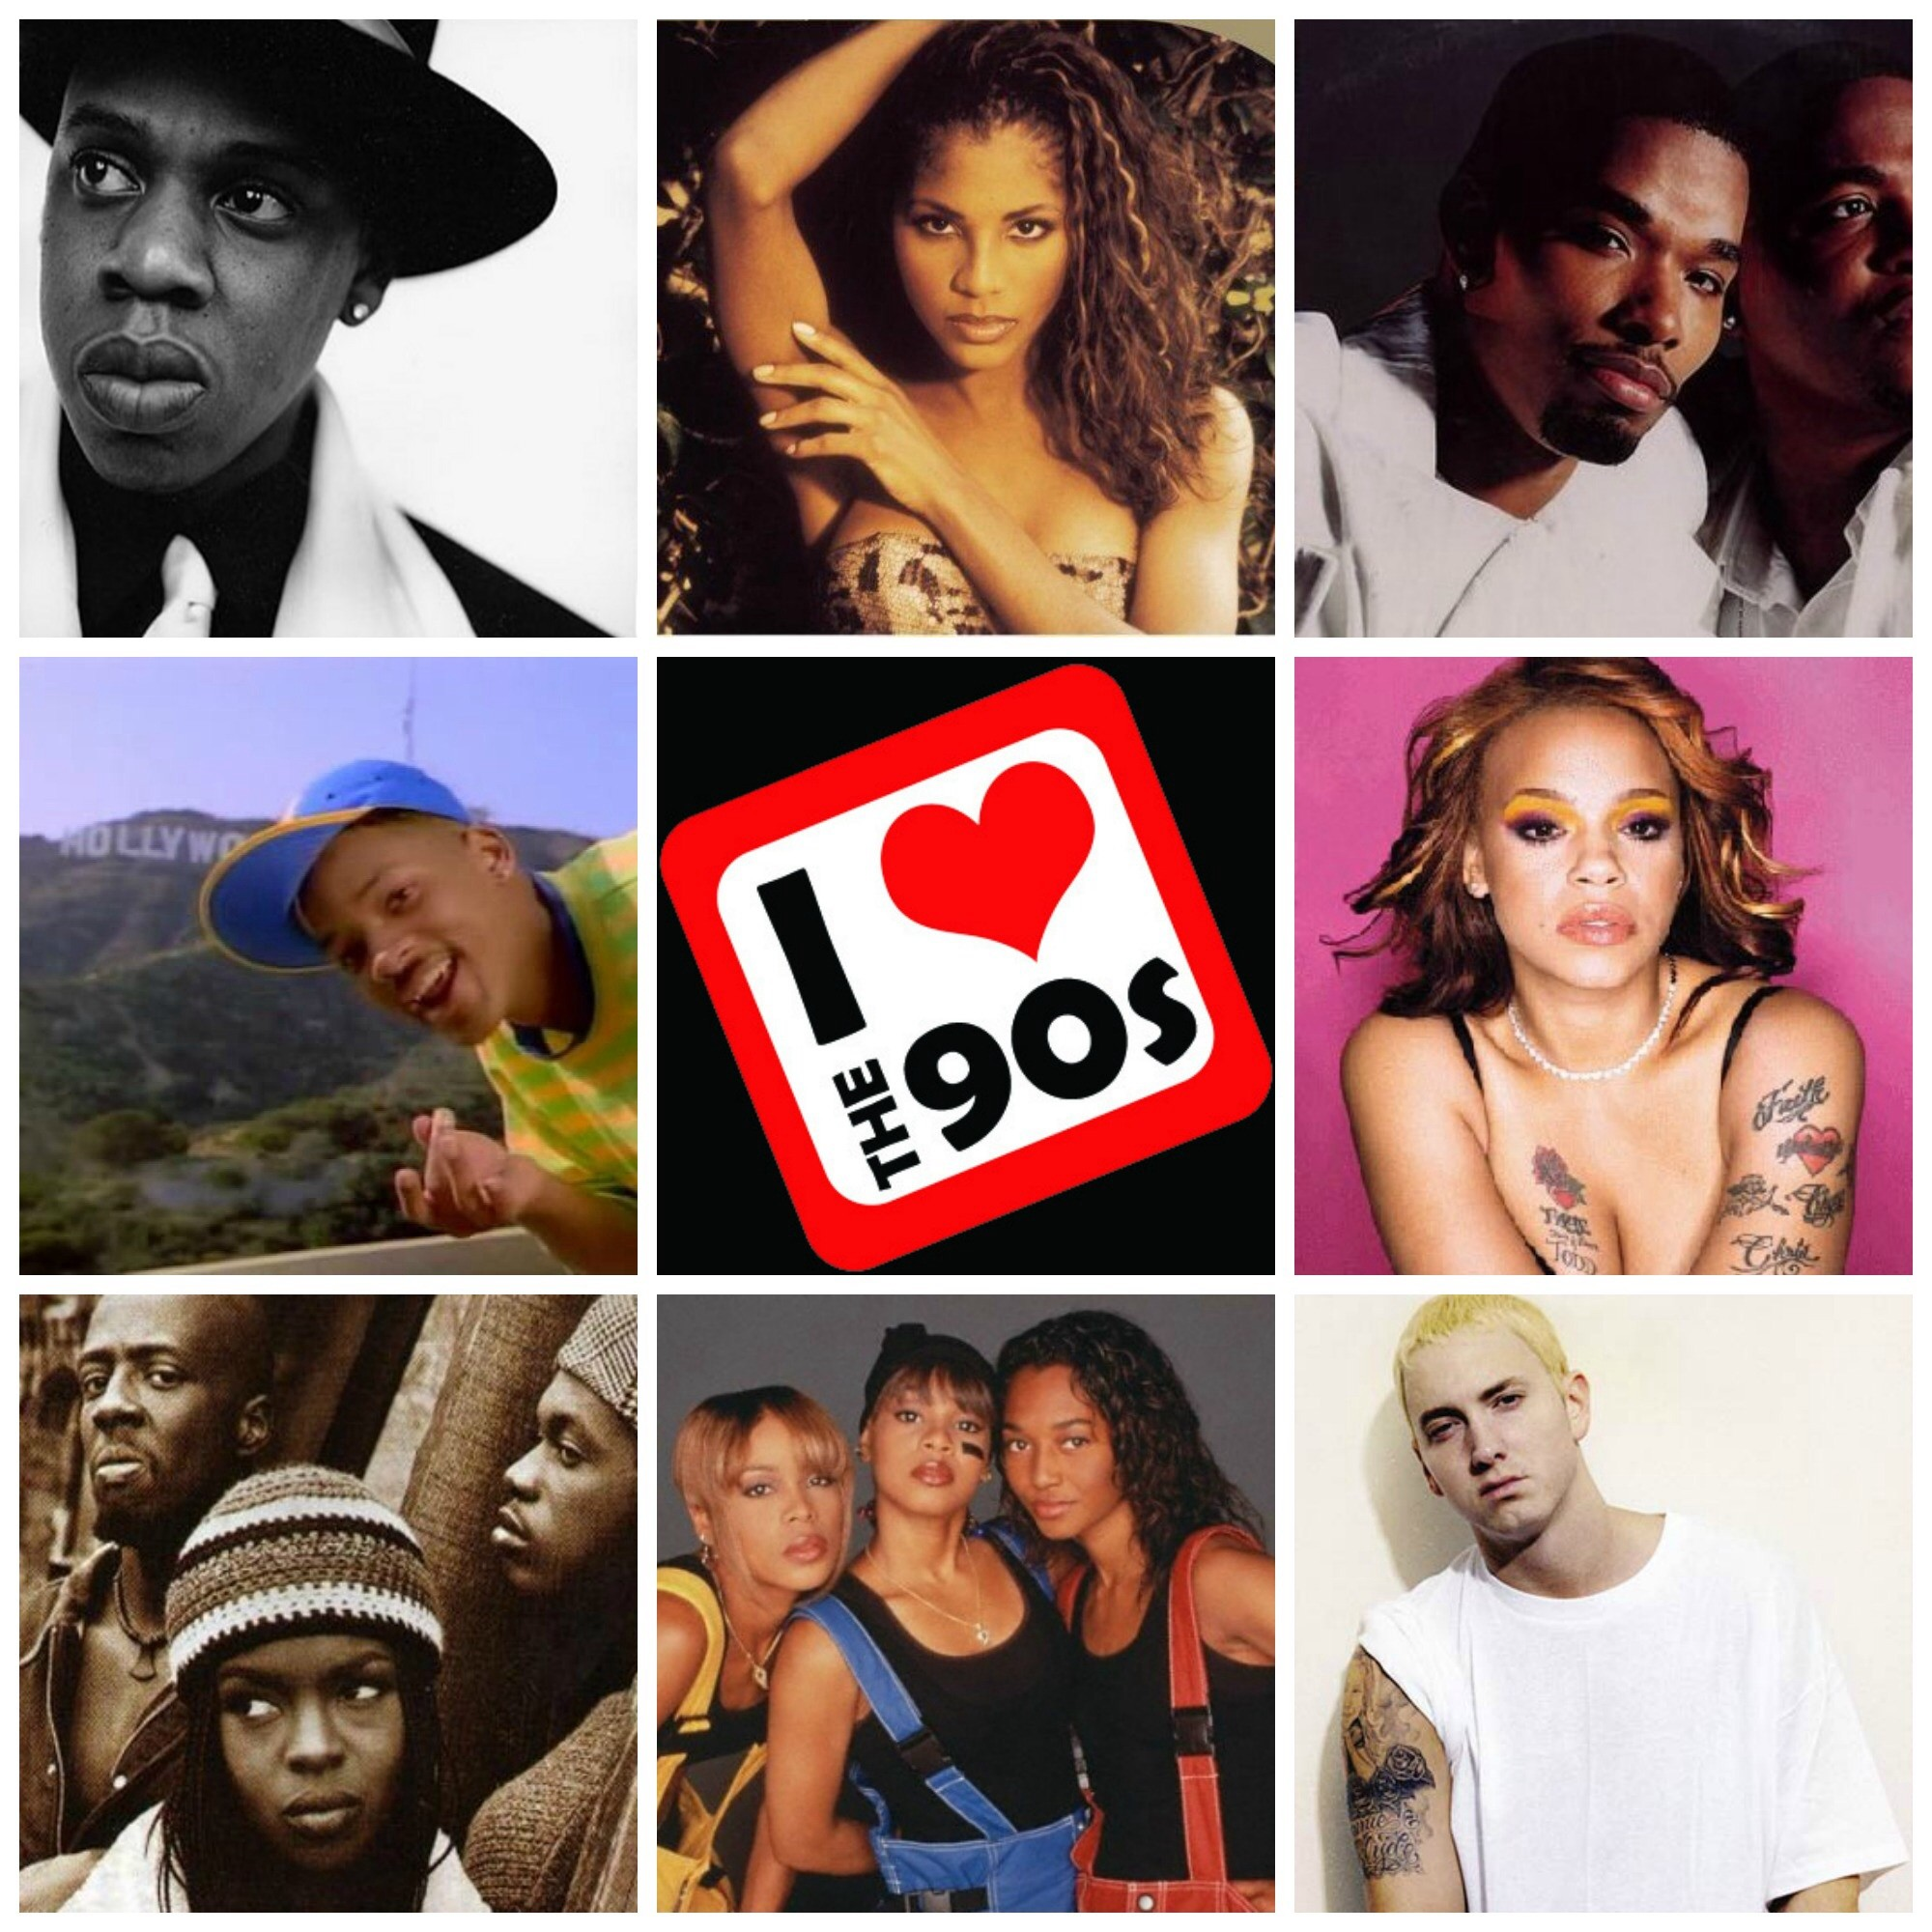 2000x2000 Music from the 90s images I Love The 90s HD wallpaper and background photos